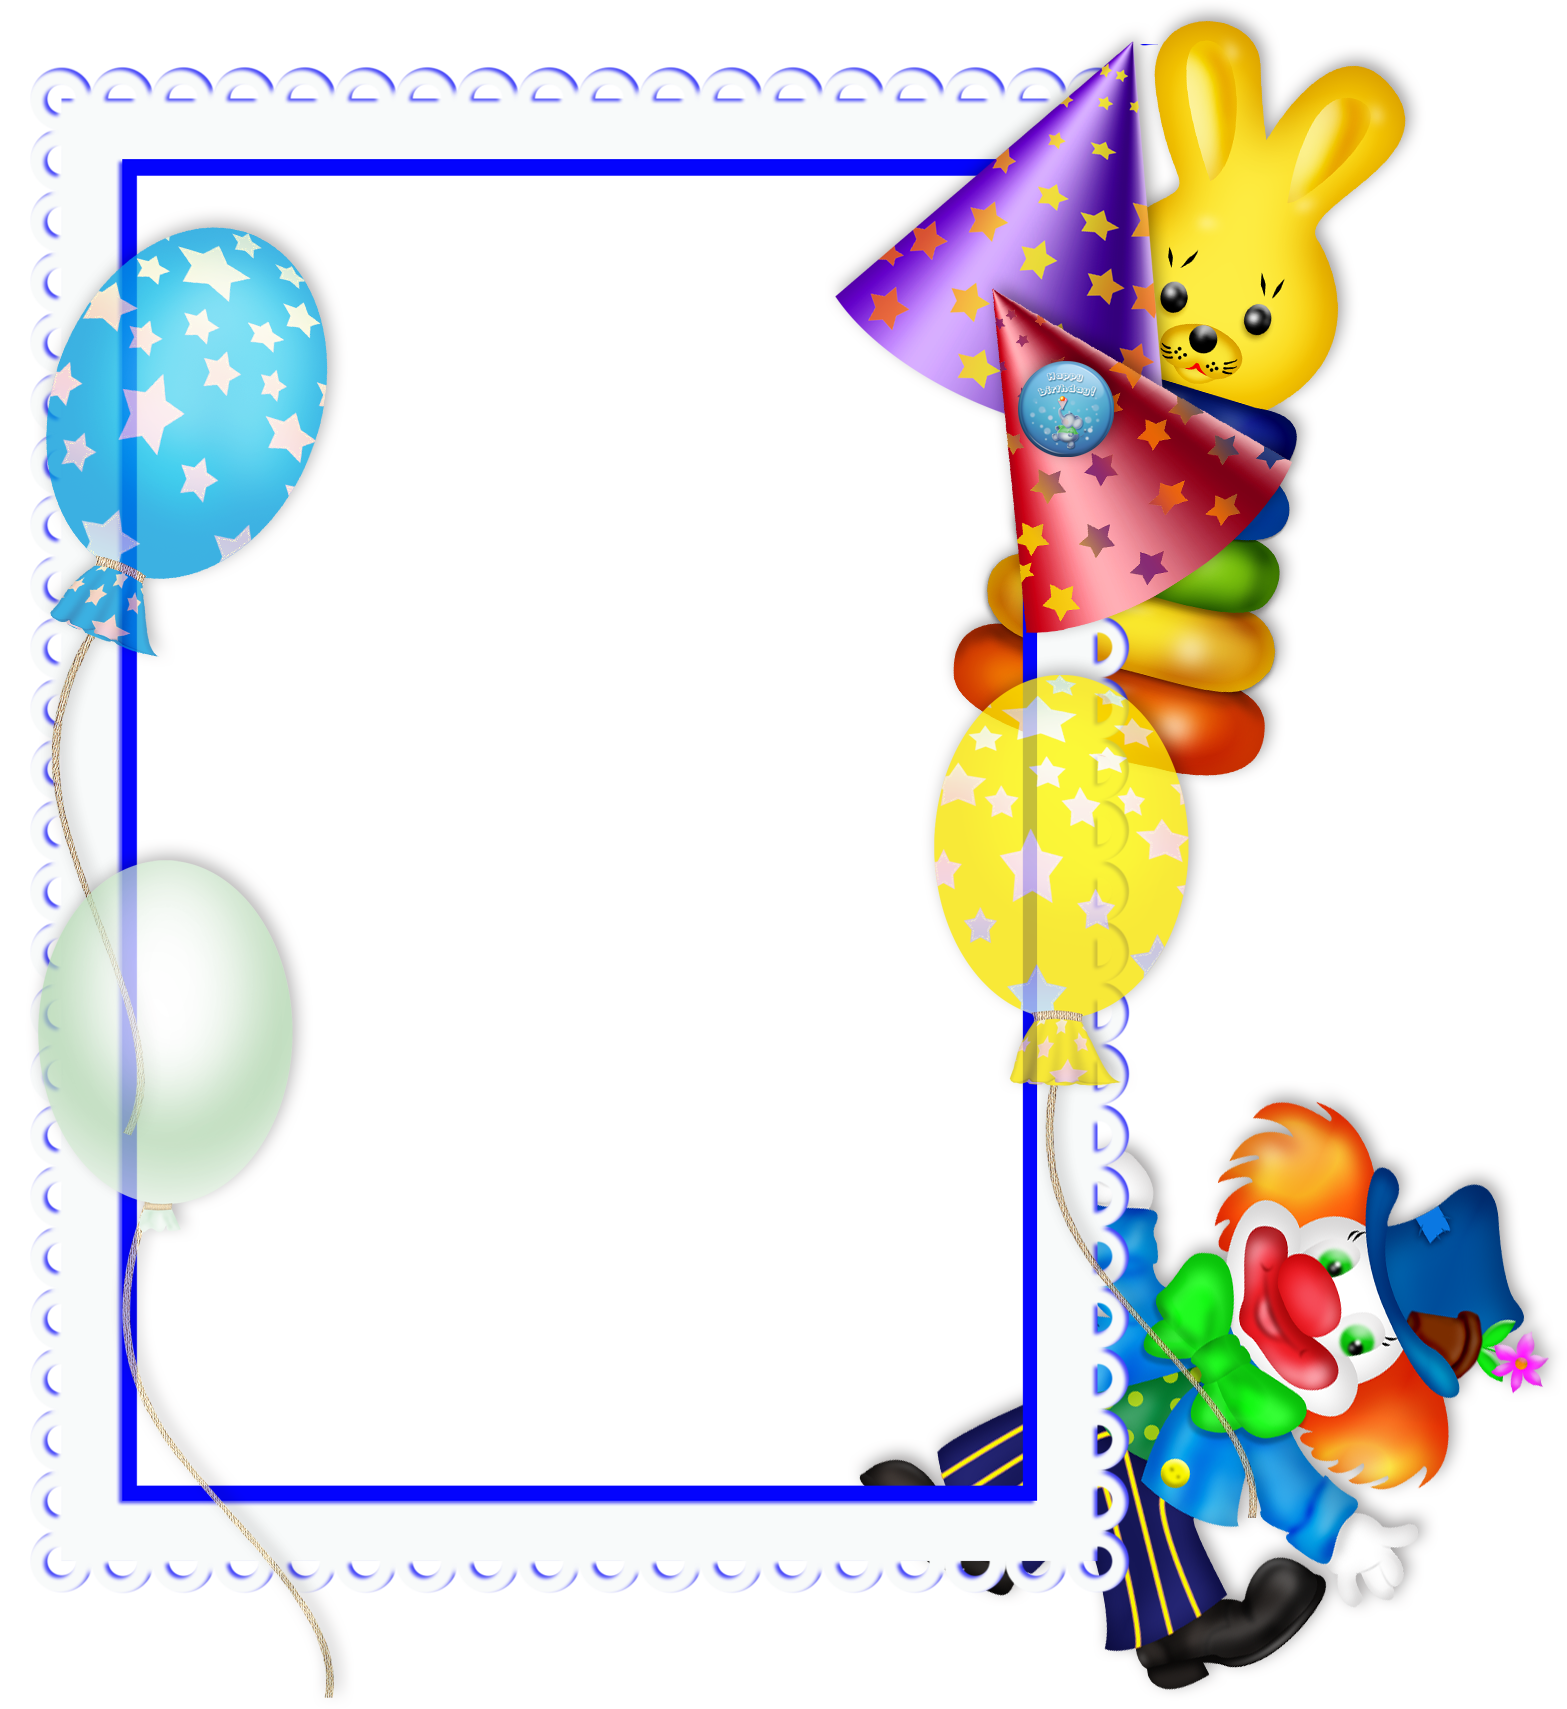 Hand clipart party. Happy birthday transparent png